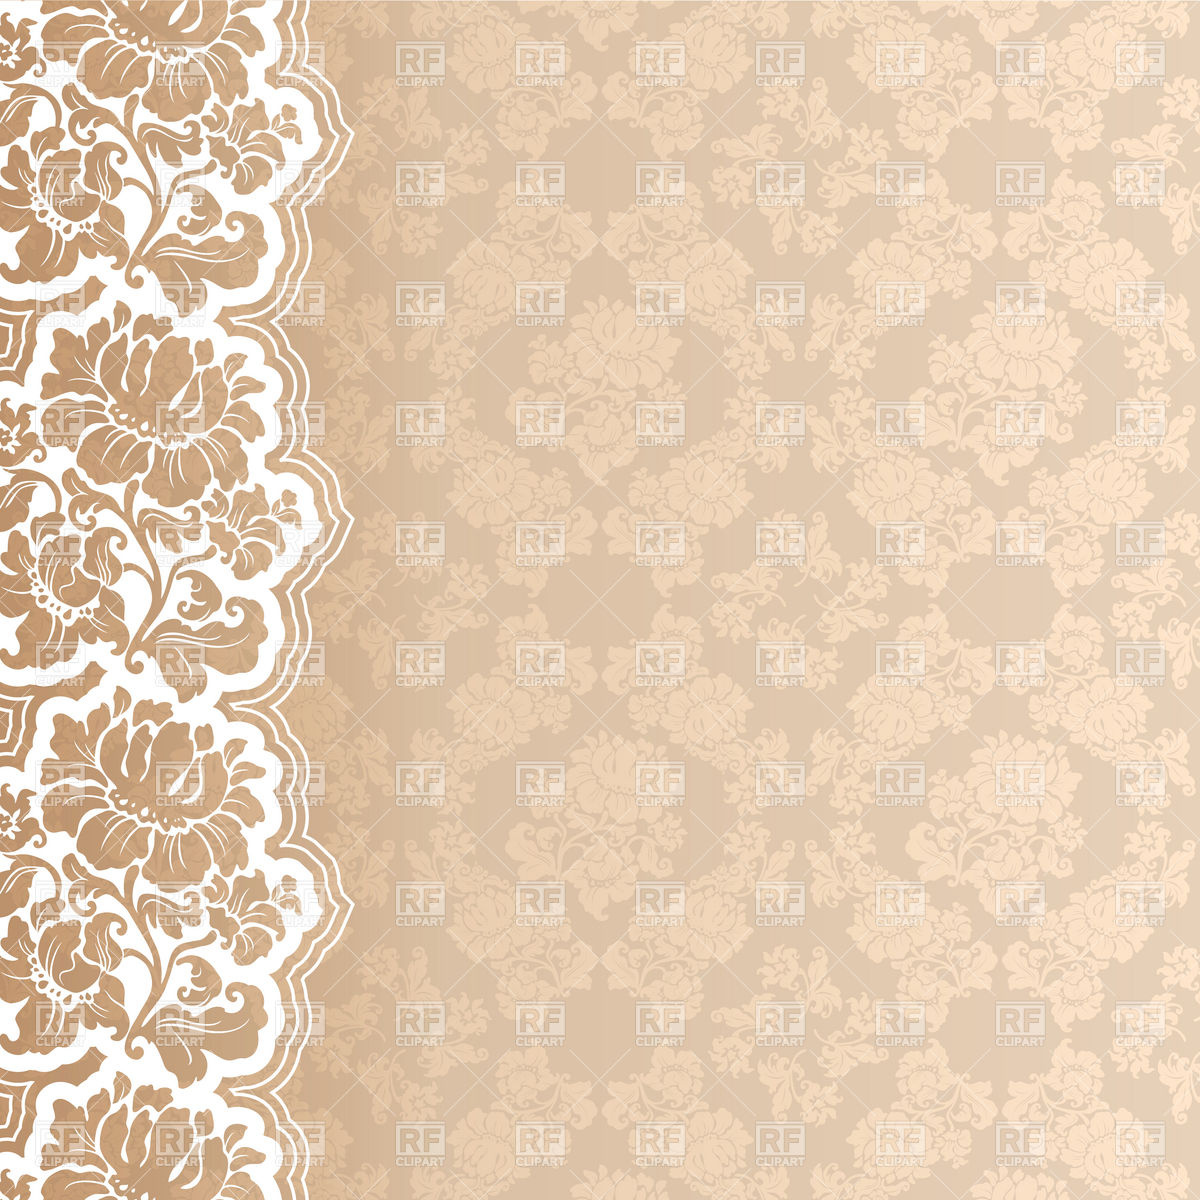 wallpaper with borders 2015   Grasscloth Wallpaper 1200x1200